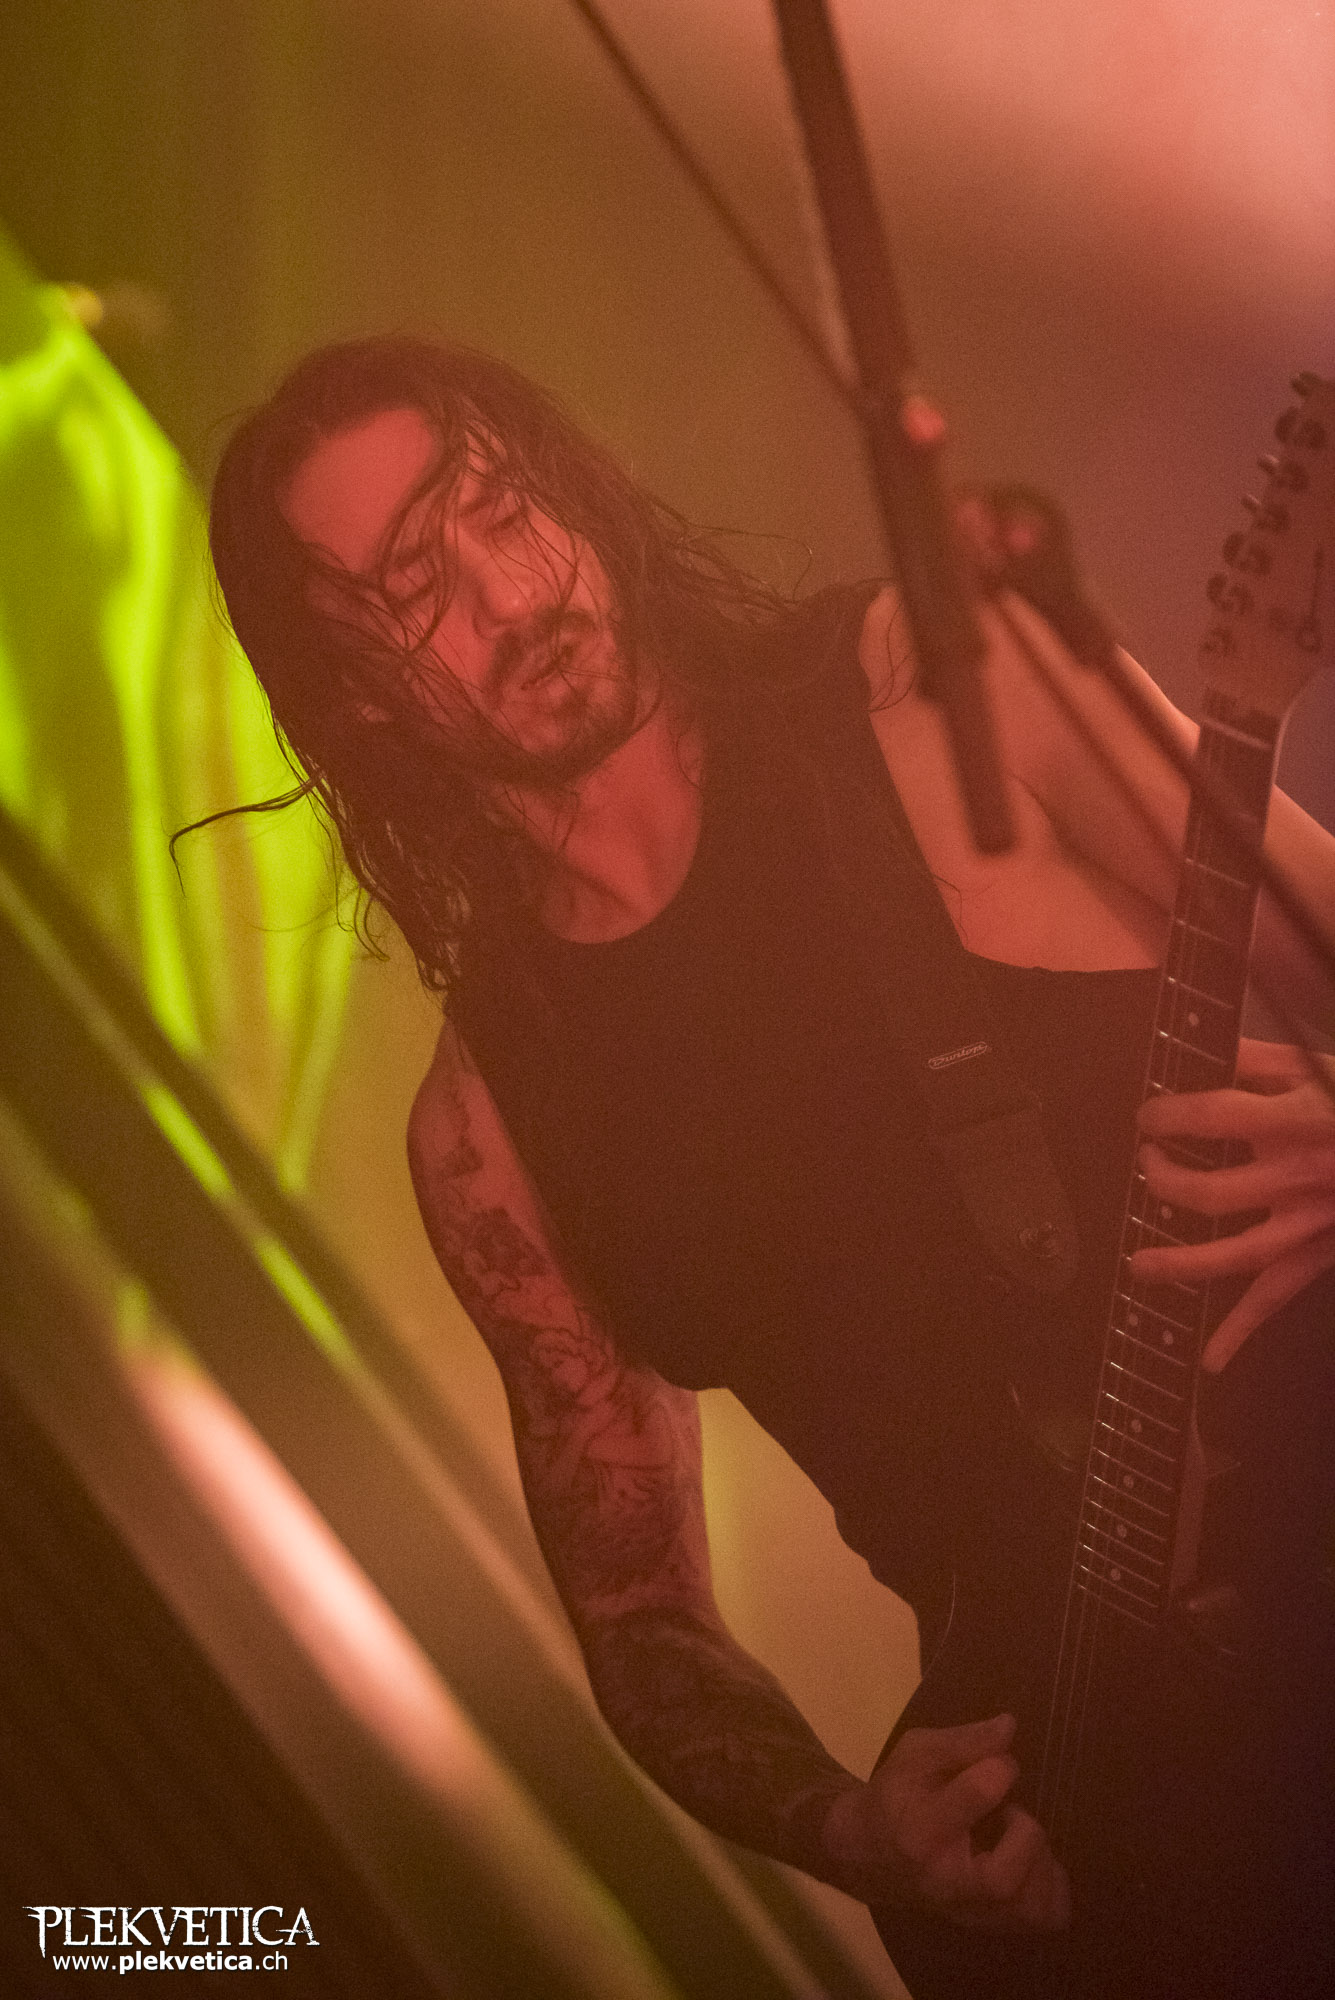 As I Lay Dying - Photo By Dänu